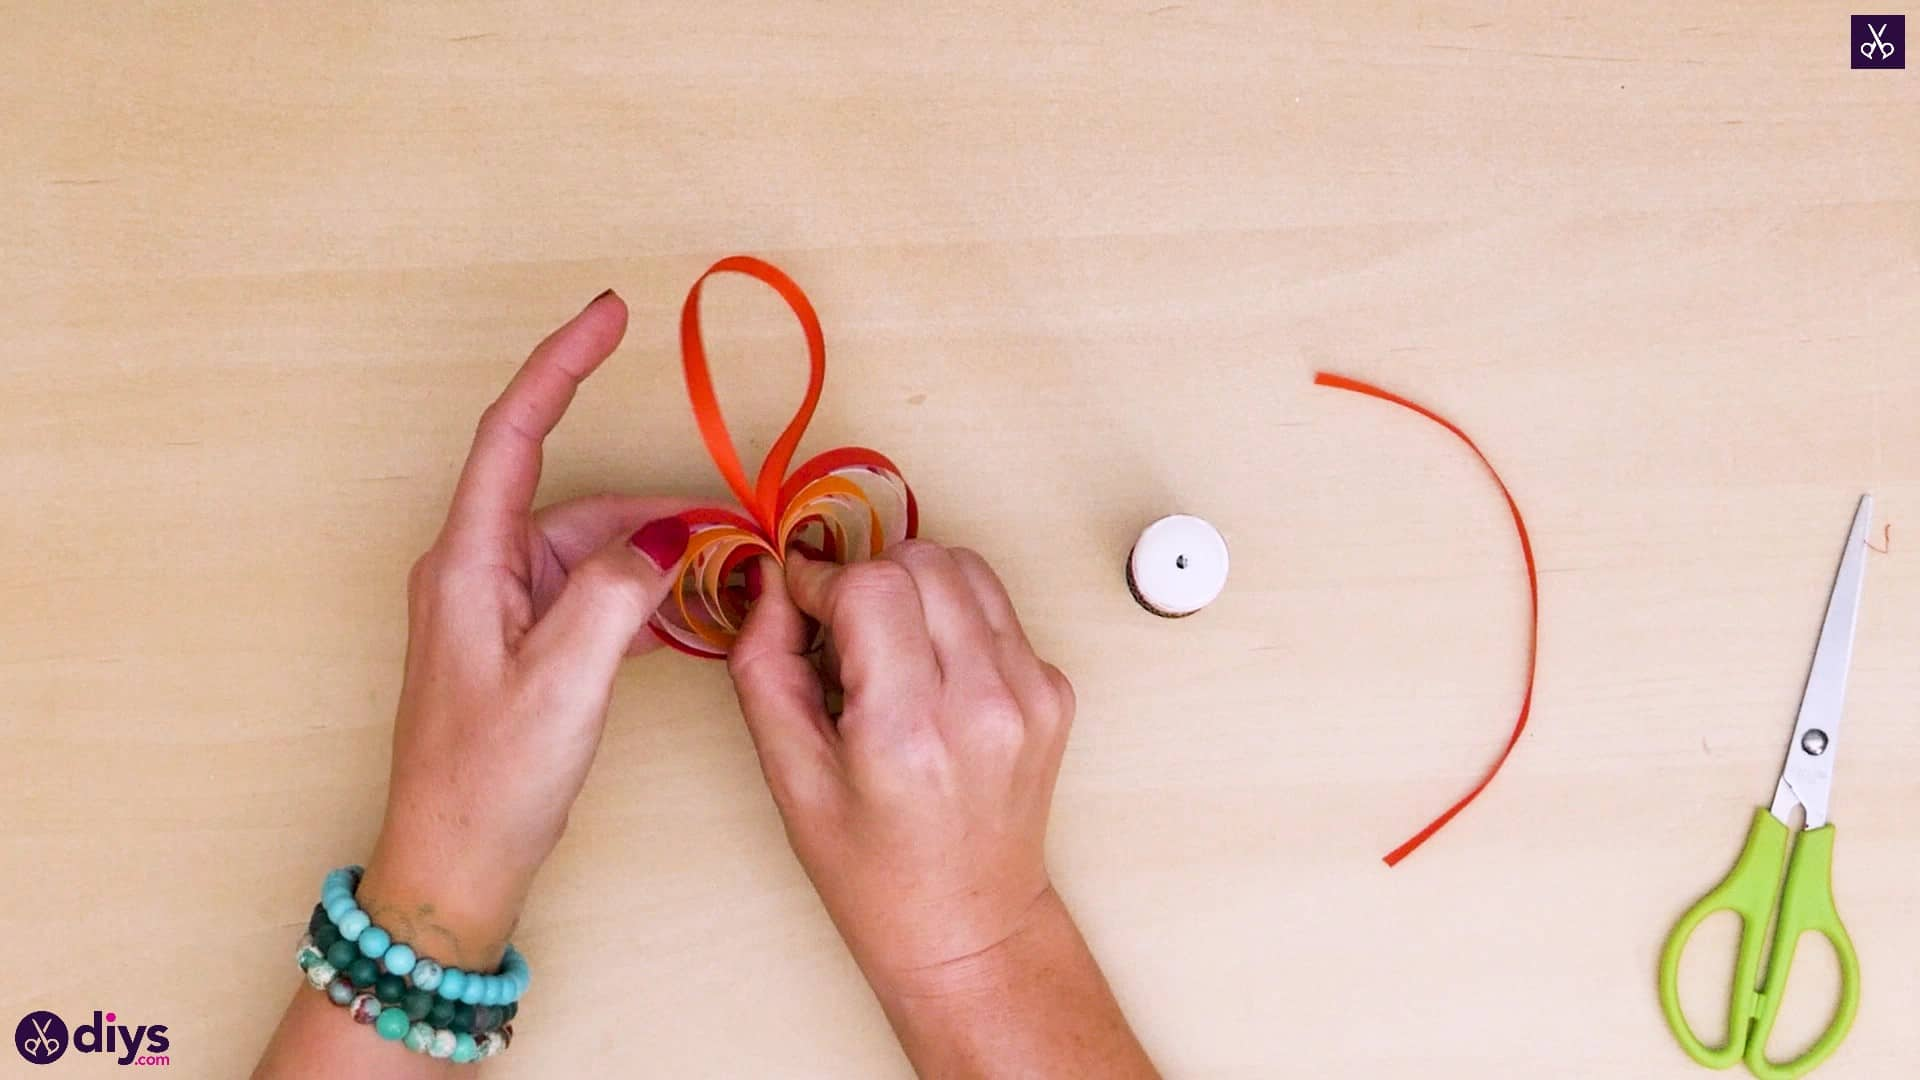 Diy ribbon heart step 9a